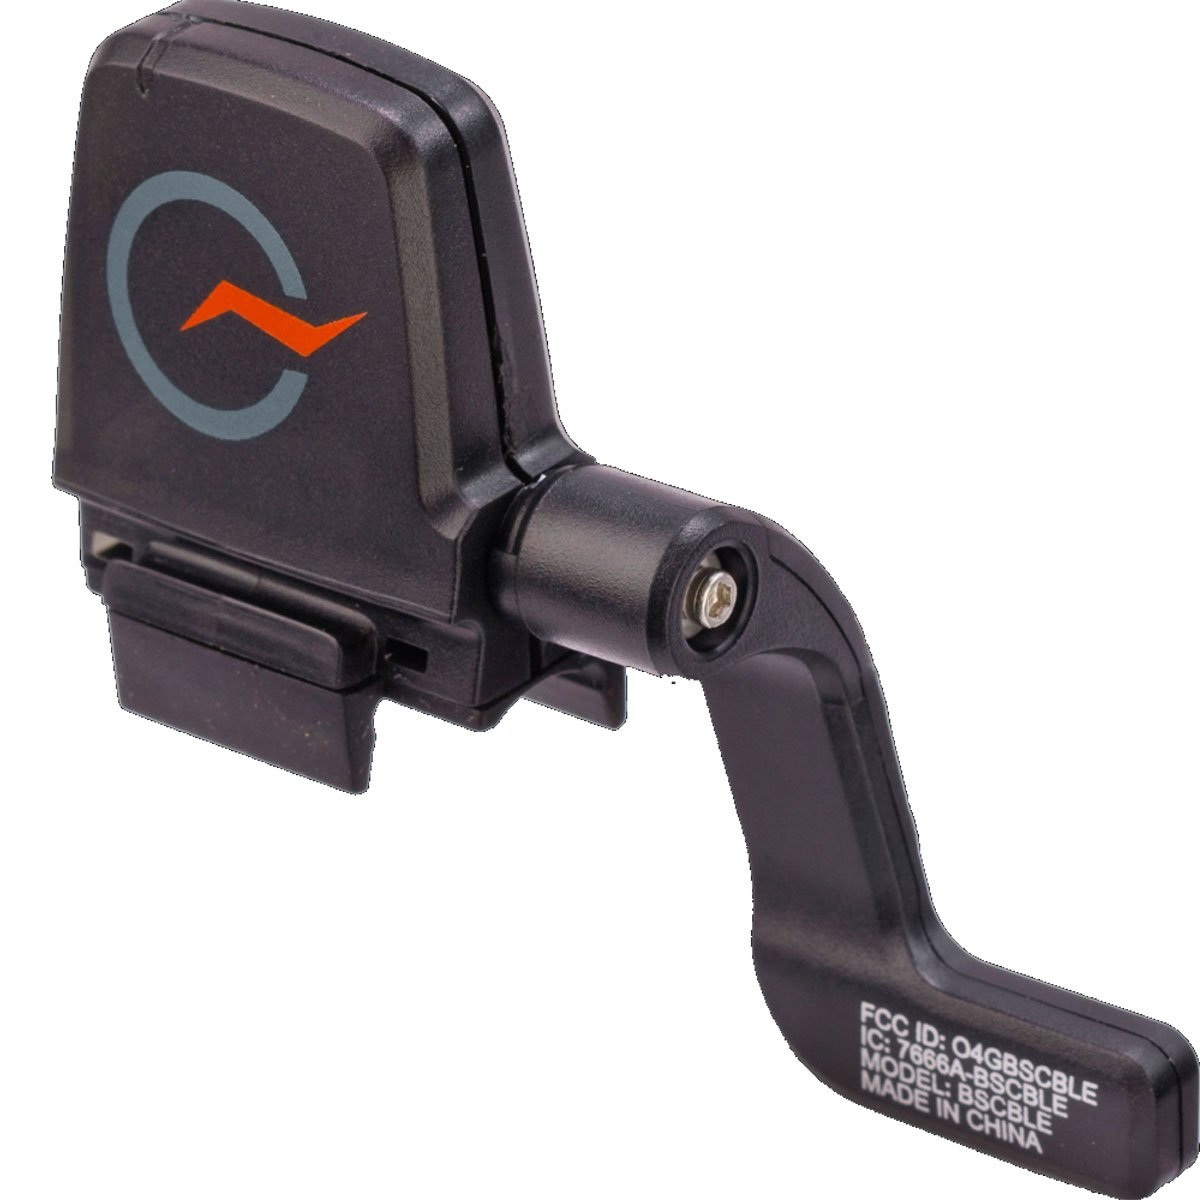 CycleOps BLE Dual Speed/Cadence Sensor 30319